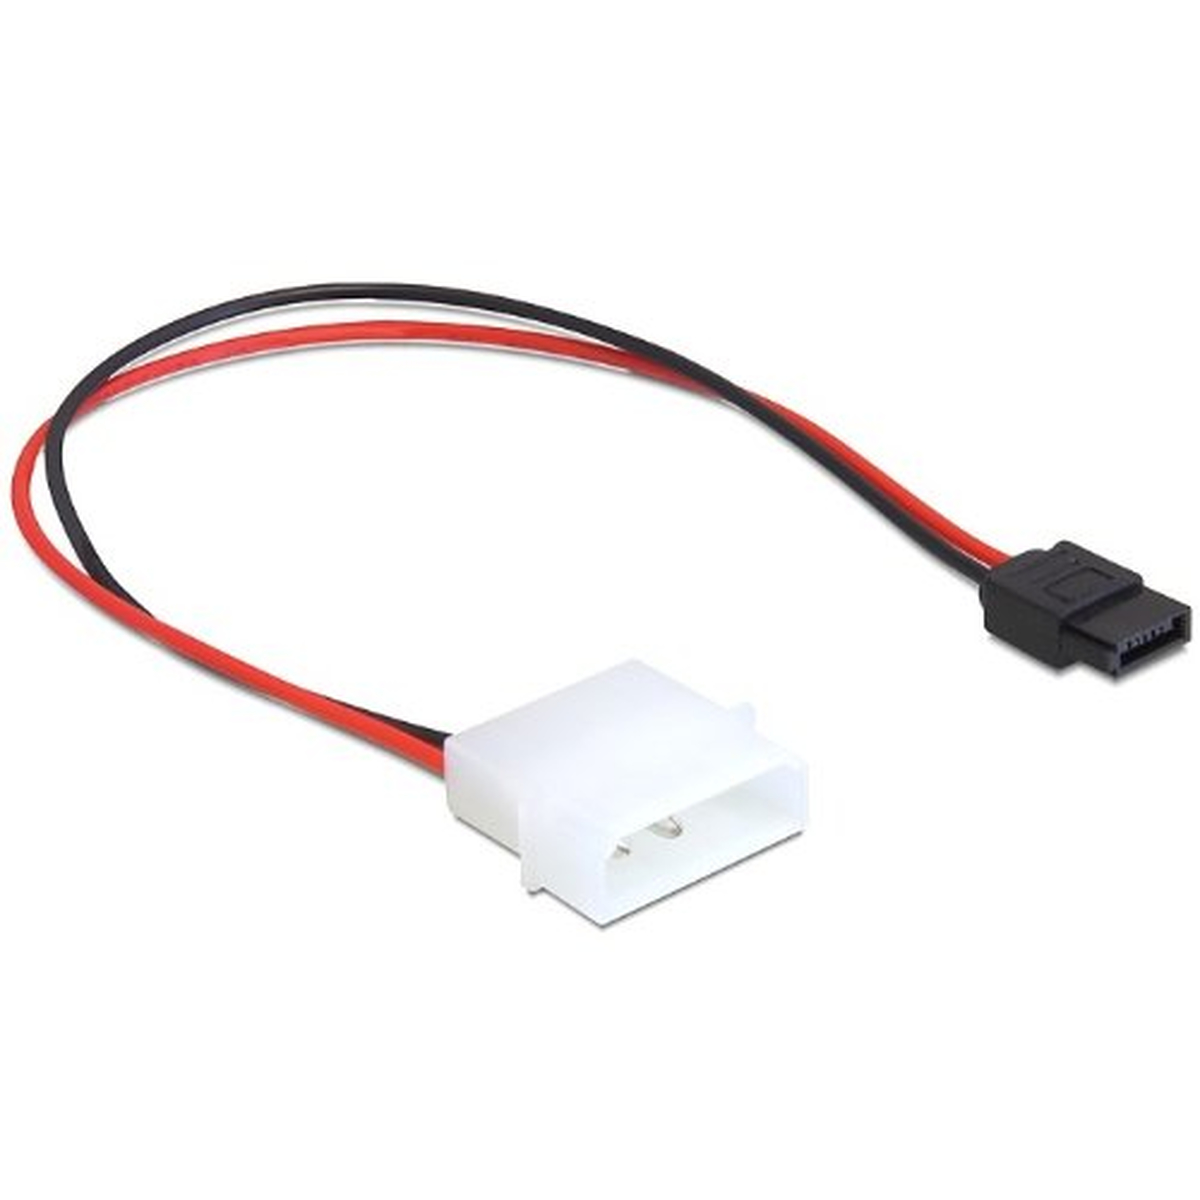 DeLOCK Kabel Power IDE Molex Stecker > Power SATA 6 Pin